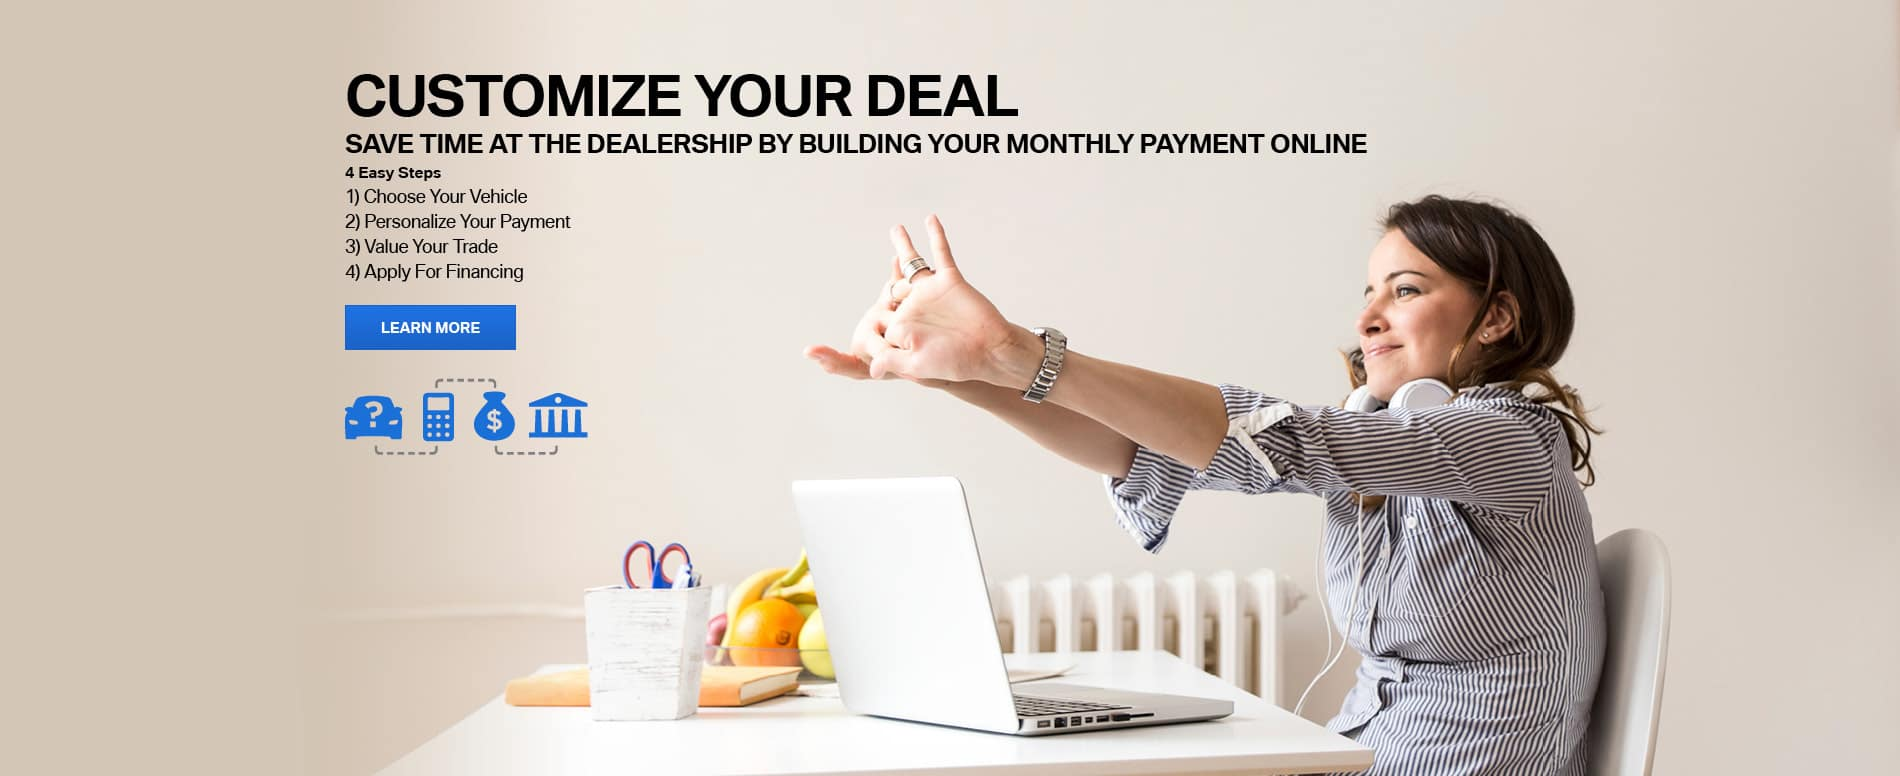 Customize Your Deal In 4 Easy Steps